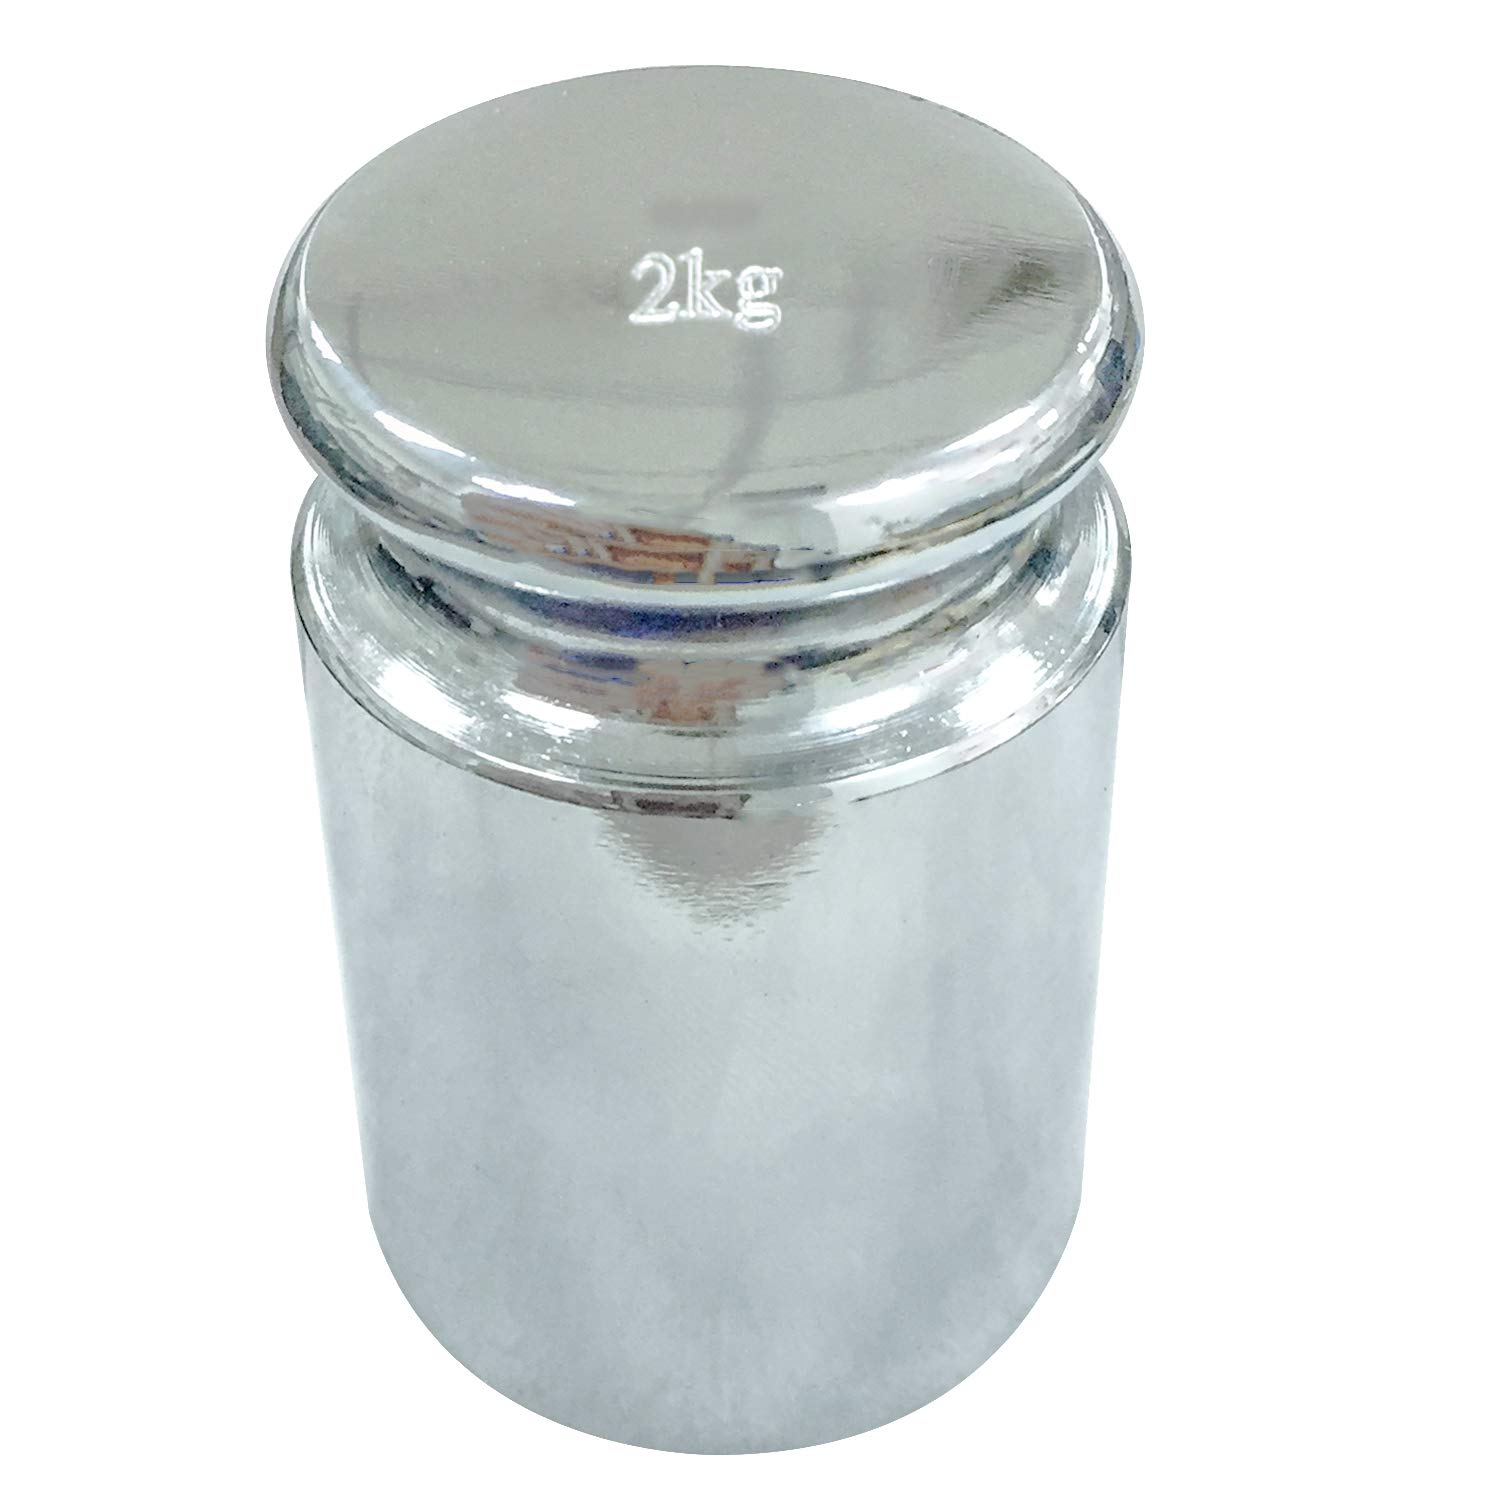 HFS(R) Chrome Scale Calibration Weight (2000G)